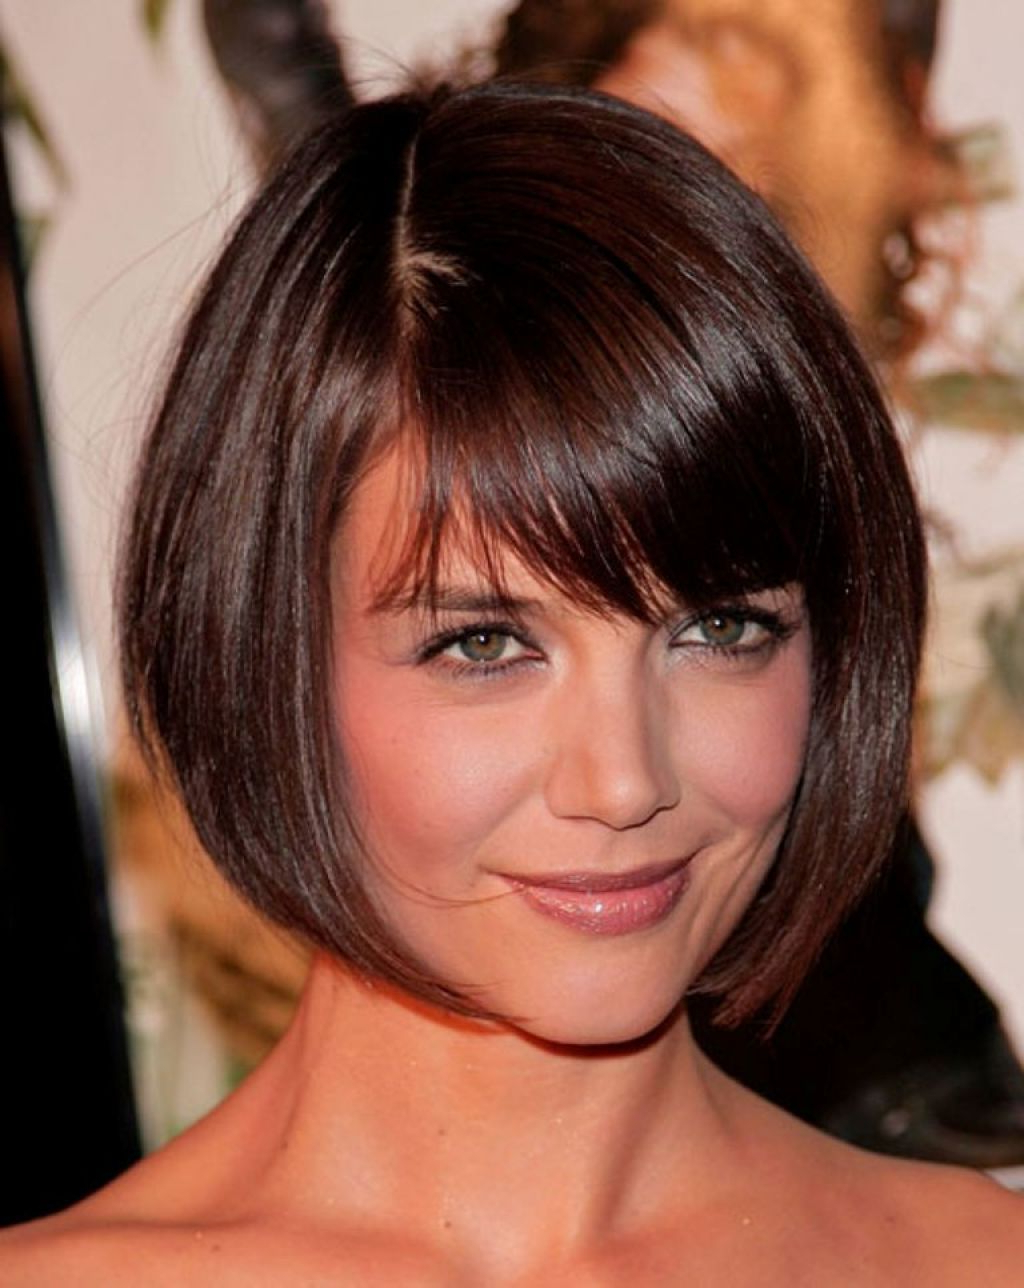 Short Hairstyles For Thick Hair Square Face   Hair!!   Pinterest With Regard To Short Hairstyles For A Square Face (View 21 of 25)